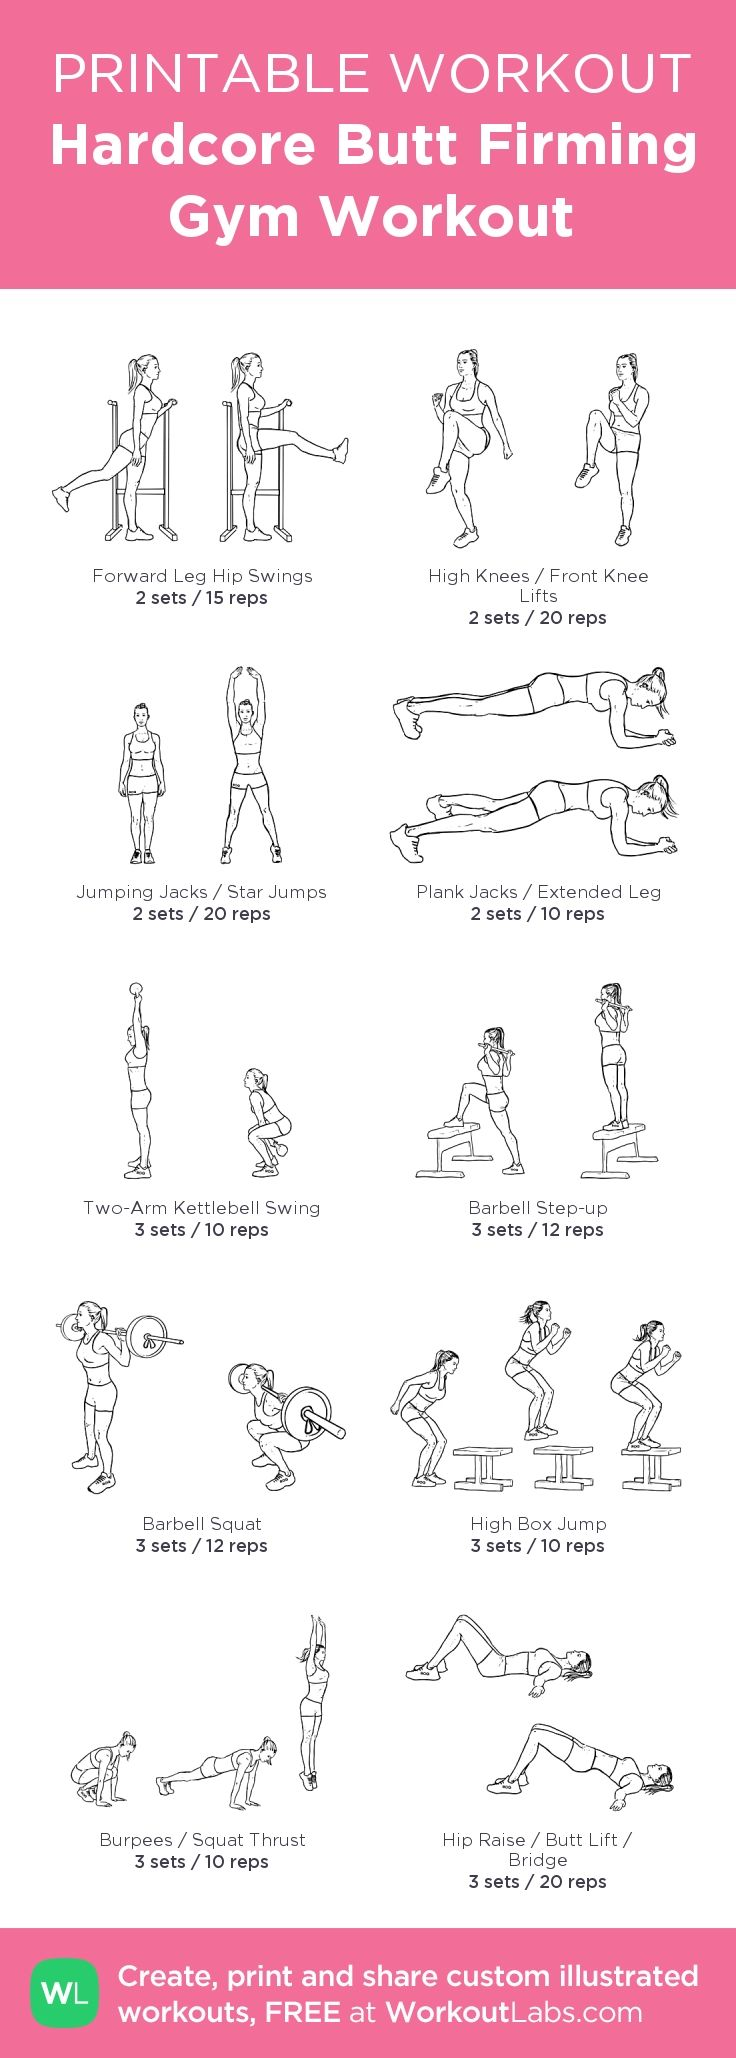 *workout routines* Hardcore Butt Firming Gym Illustrated Workout for Women • Click to customize and download a FREE PDF! #customworkout #weightlossbeforeandafter